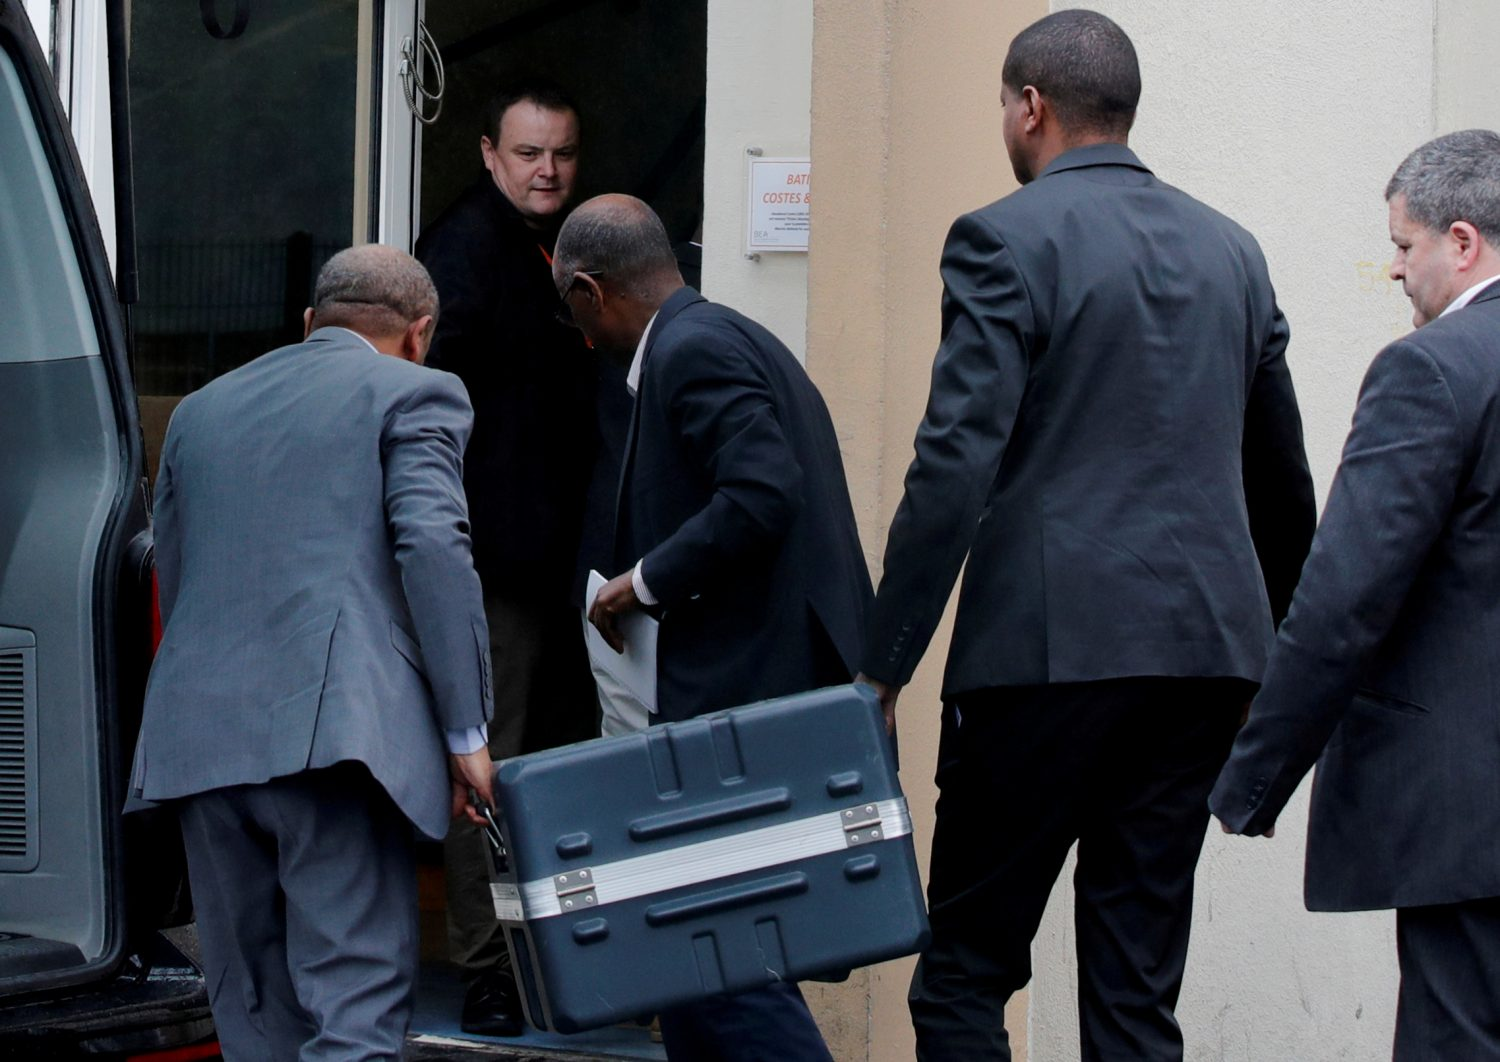 Men unload a case containing the black boxes from the crashed Ethiopian Airlines Boeing 737 MAX 8 outside the headquarters of France's BEA air accident investigation agency in Le Bourget, north of Paris, France, March 14, 2019. REUTERS/Philippe Wojazer/File Photo